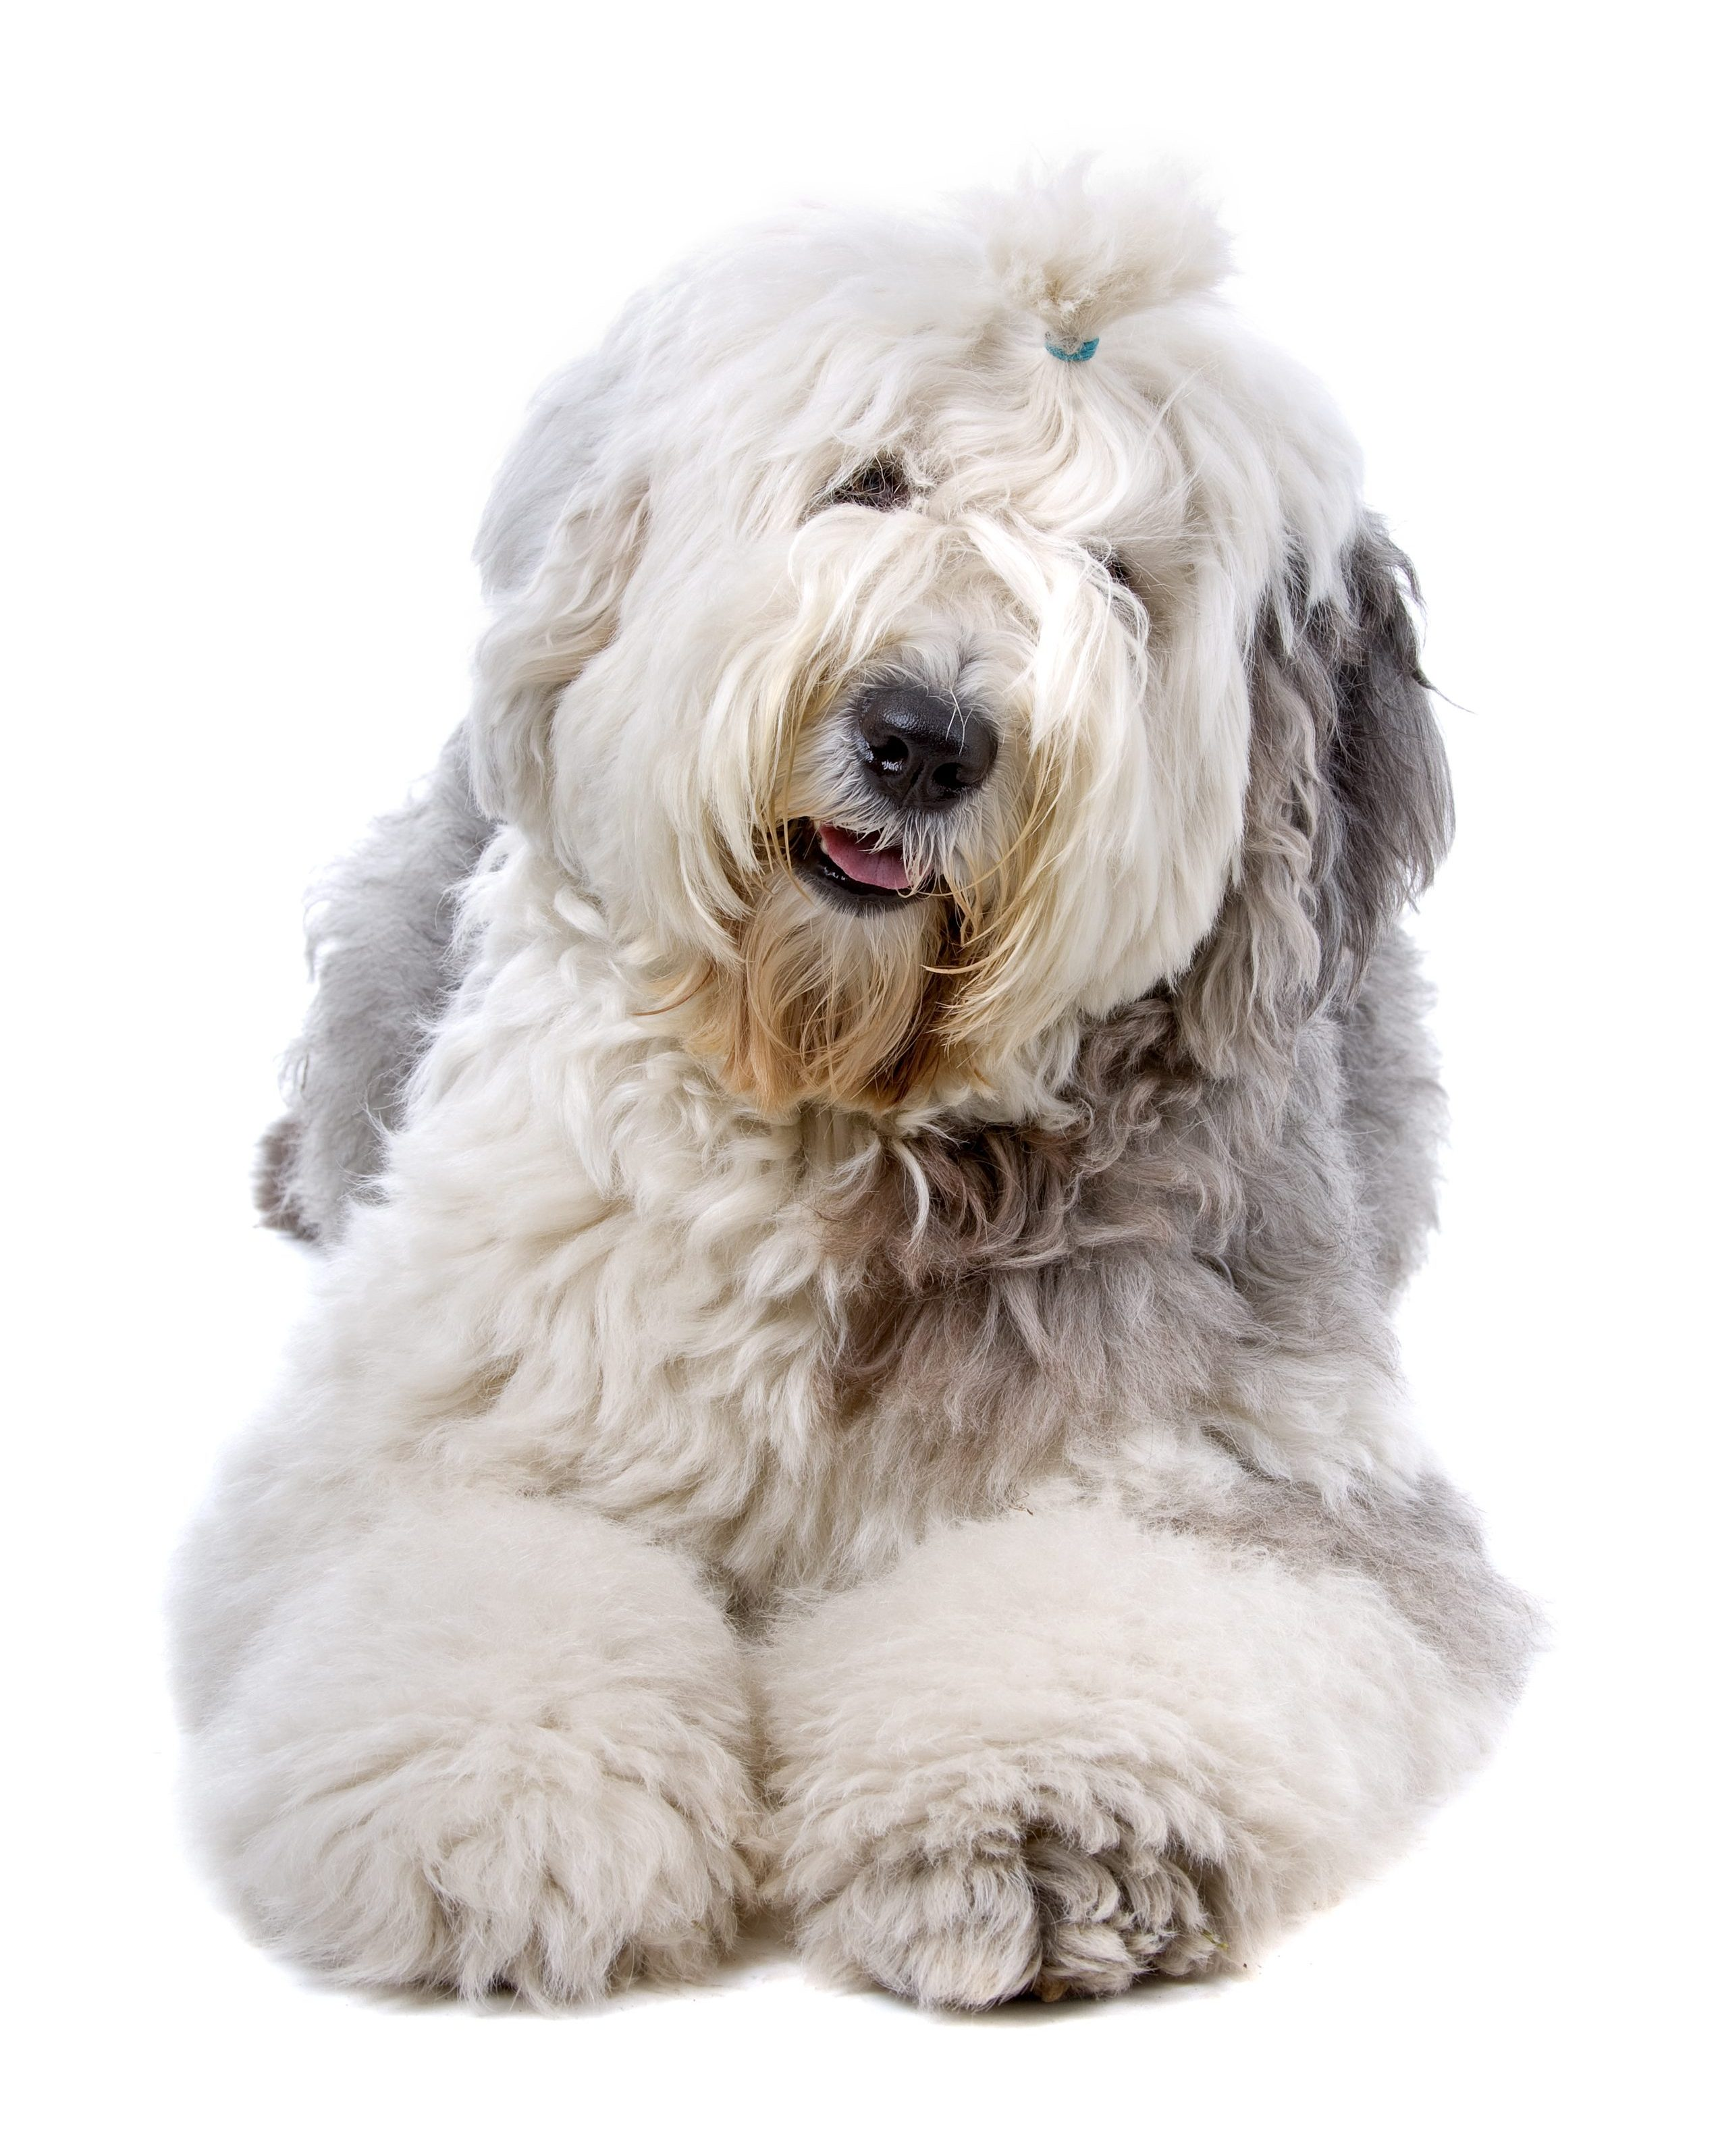 Old English Sheepdog lying down in front of white background